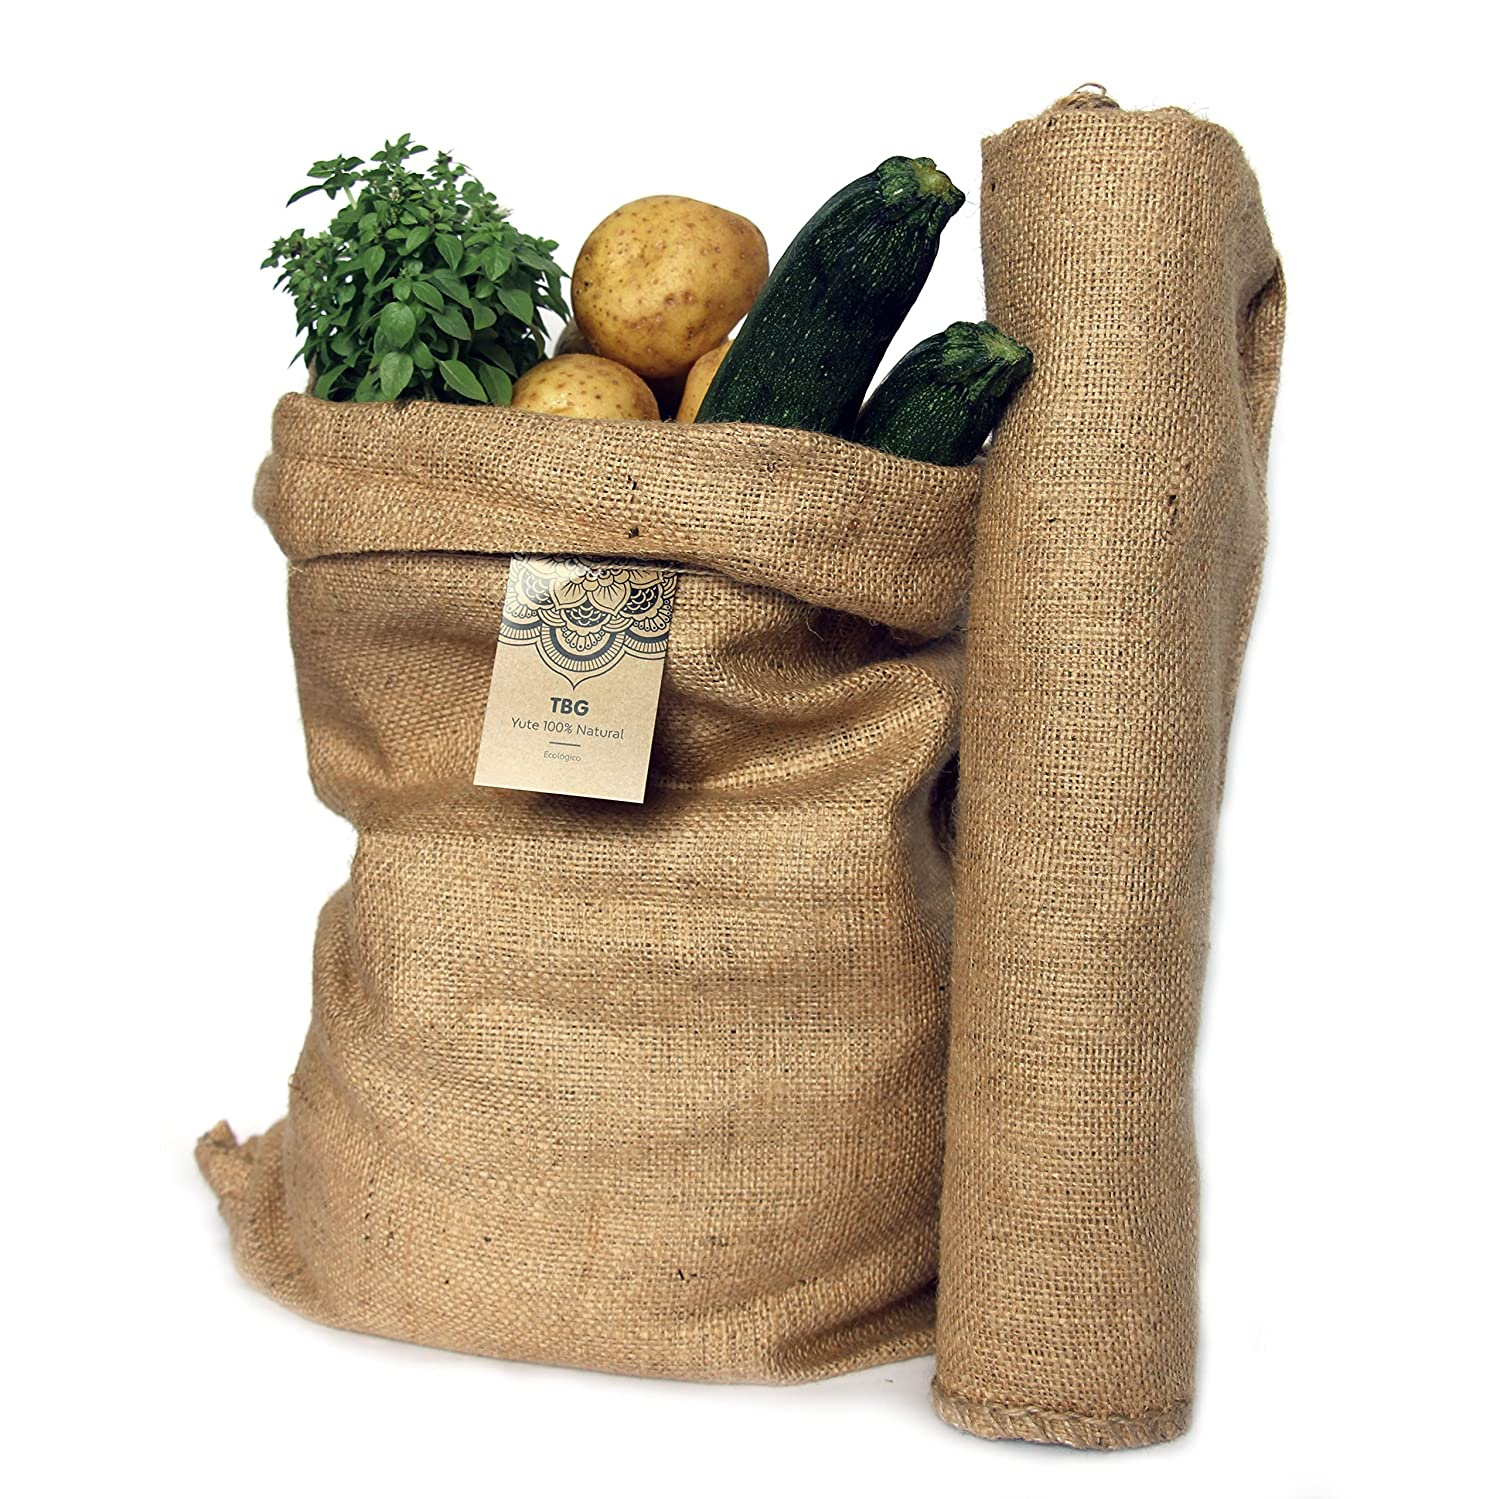 100% Natural Jute Large Bags – Pack 2 Bags Green. Ideal for Kitchen, Garden and Allotment Urban. Eco Bag for Vegetables, Salads and Vegetables. Organizer Rustic 65 x 47 cm